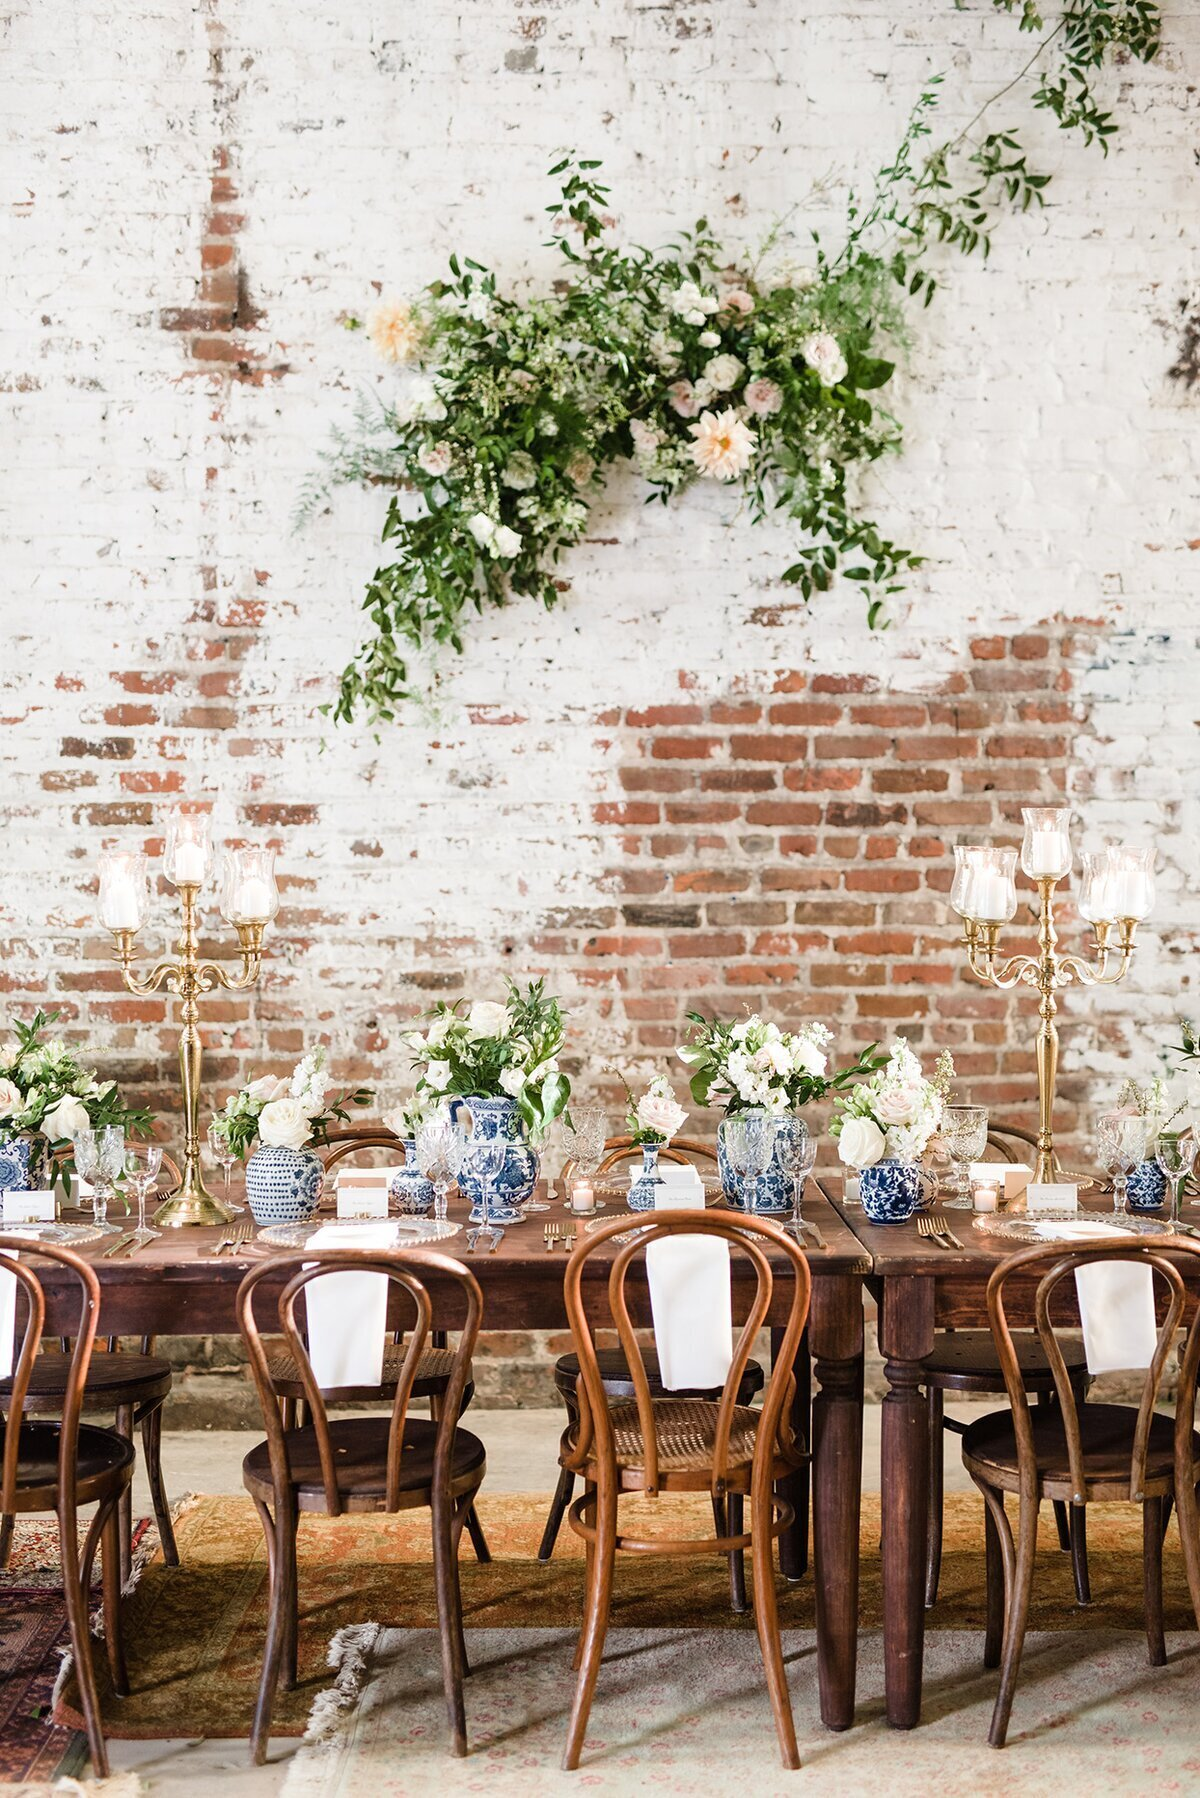 Michelle Norwood Events - New Orleans Wedding Planner - Featured in Martha Stewart Weddings